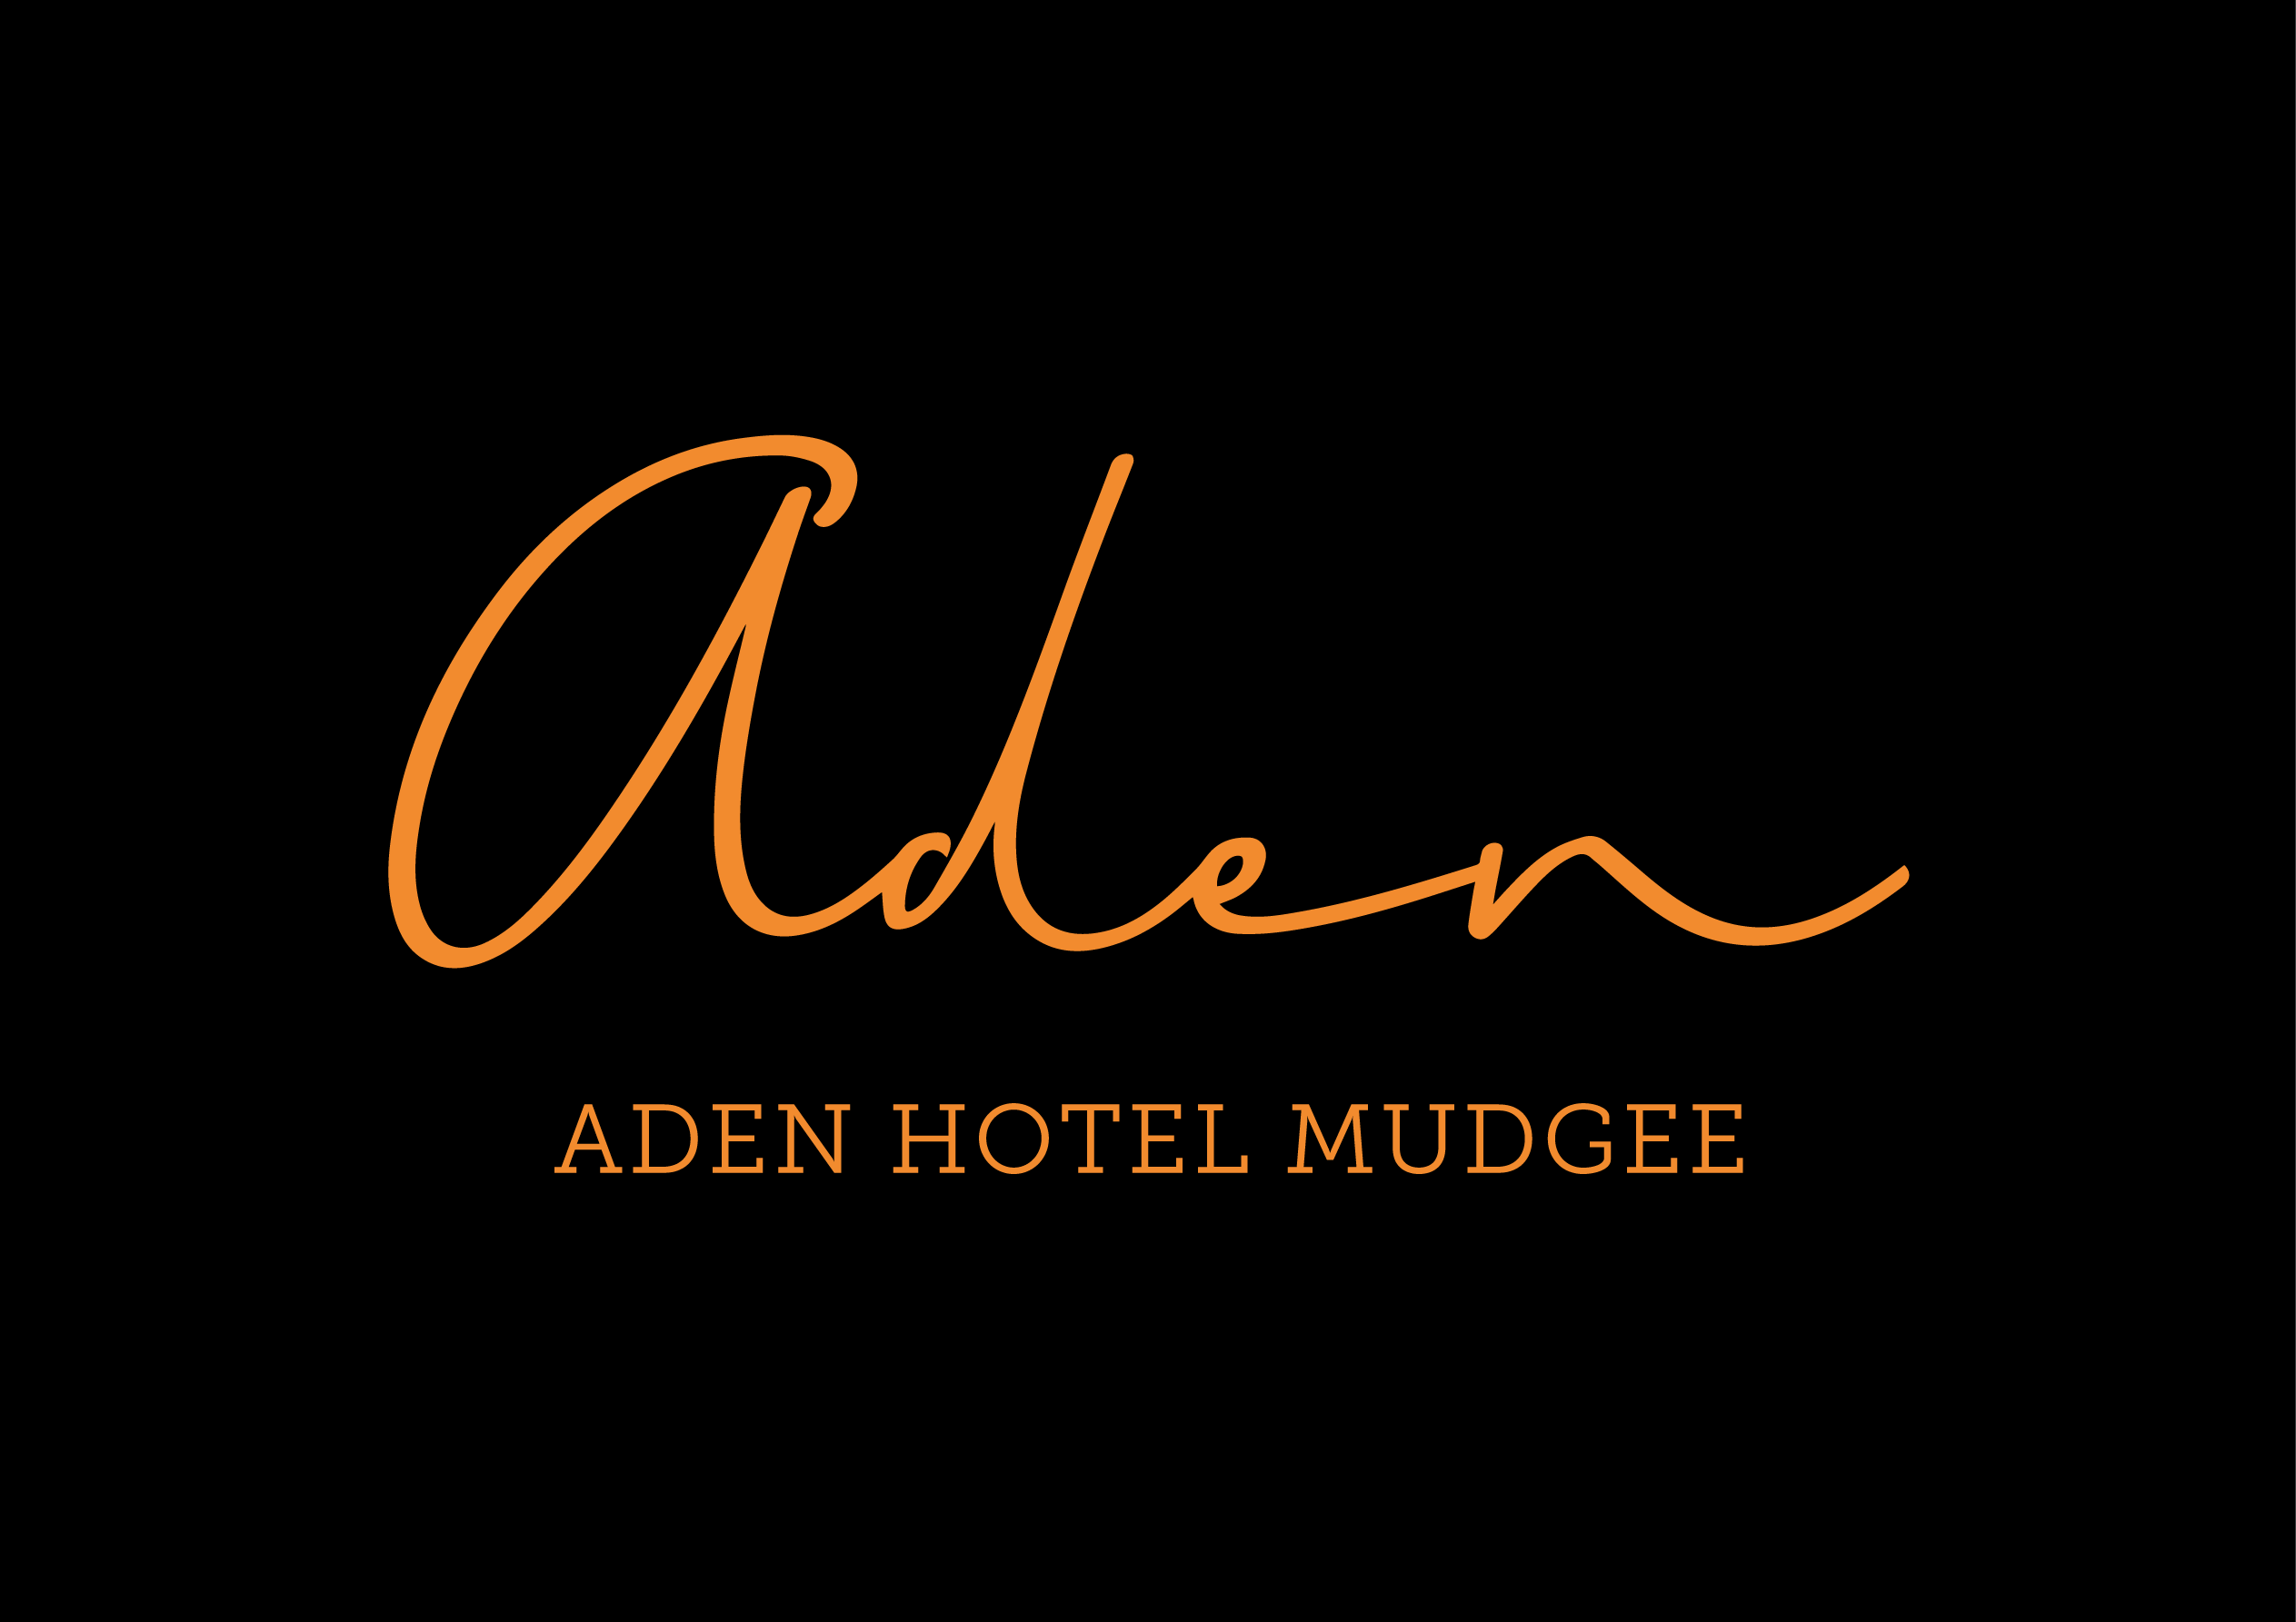 Comfort Inn Aden Hotel Mudgee - SA Accommodation